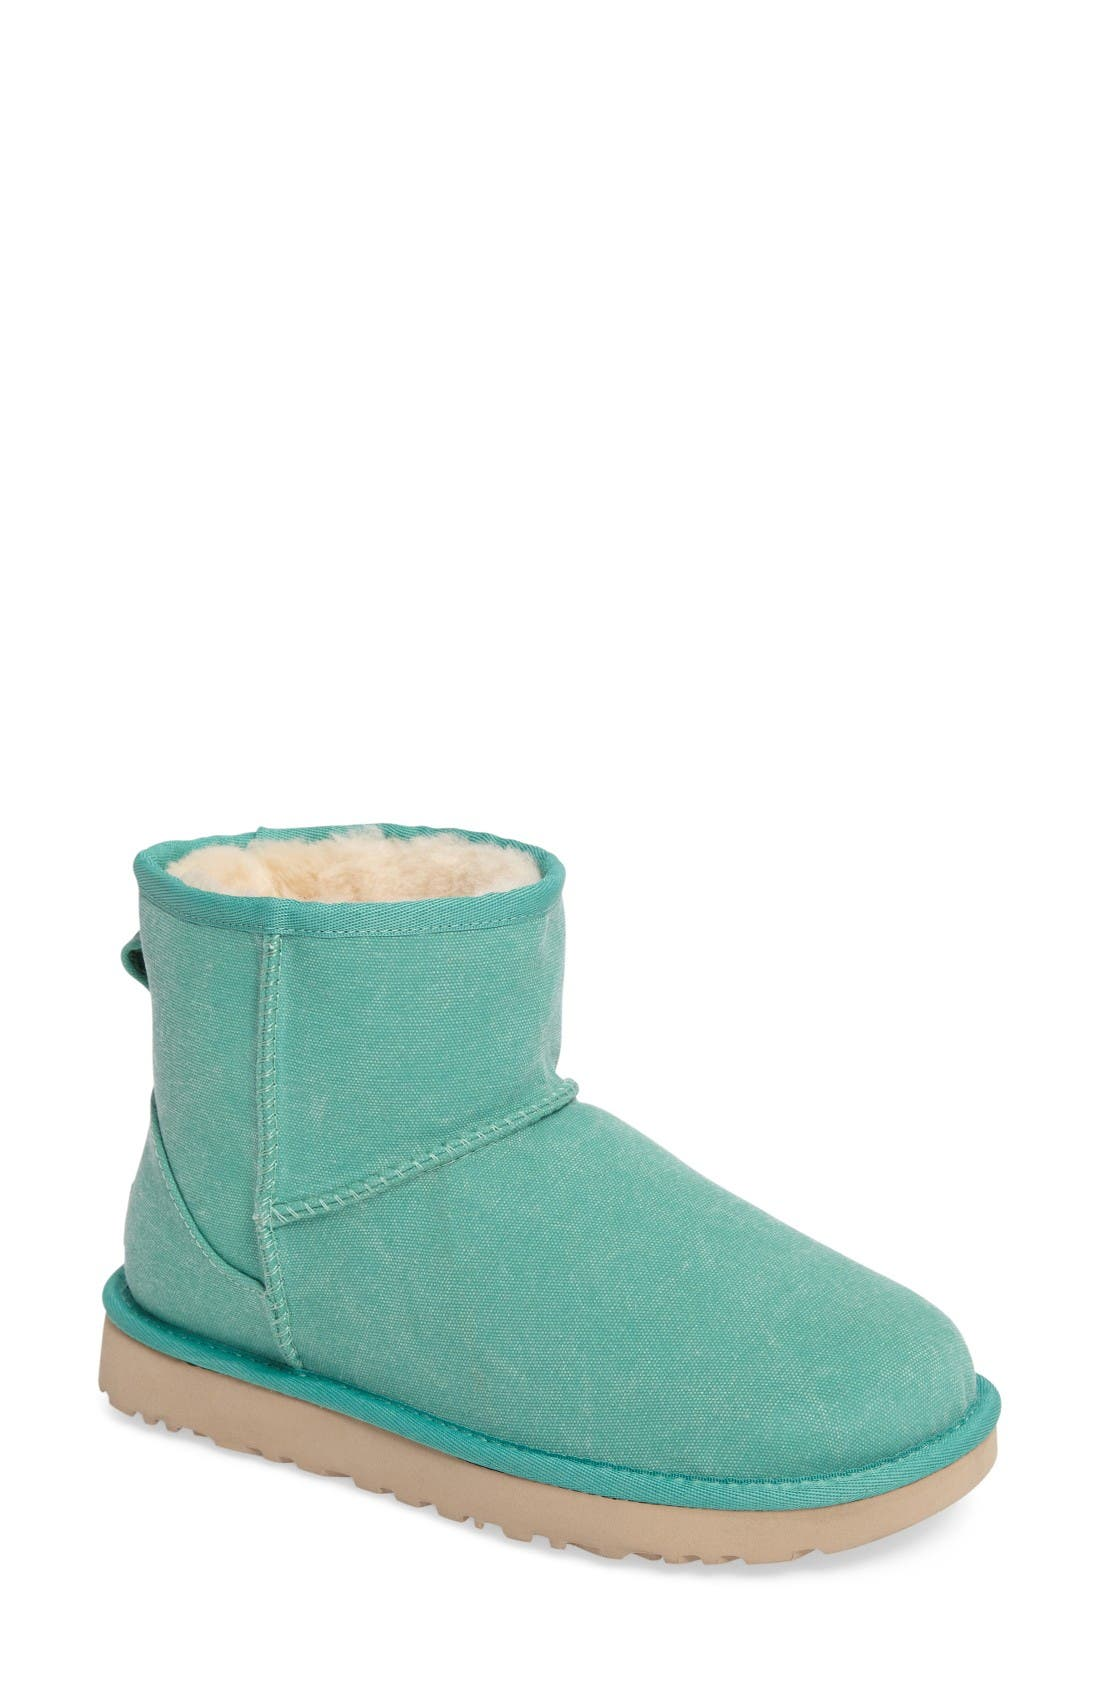 Classic Mini II Bootie,                             Main thumbnail 1, color,                             Verde Canvas